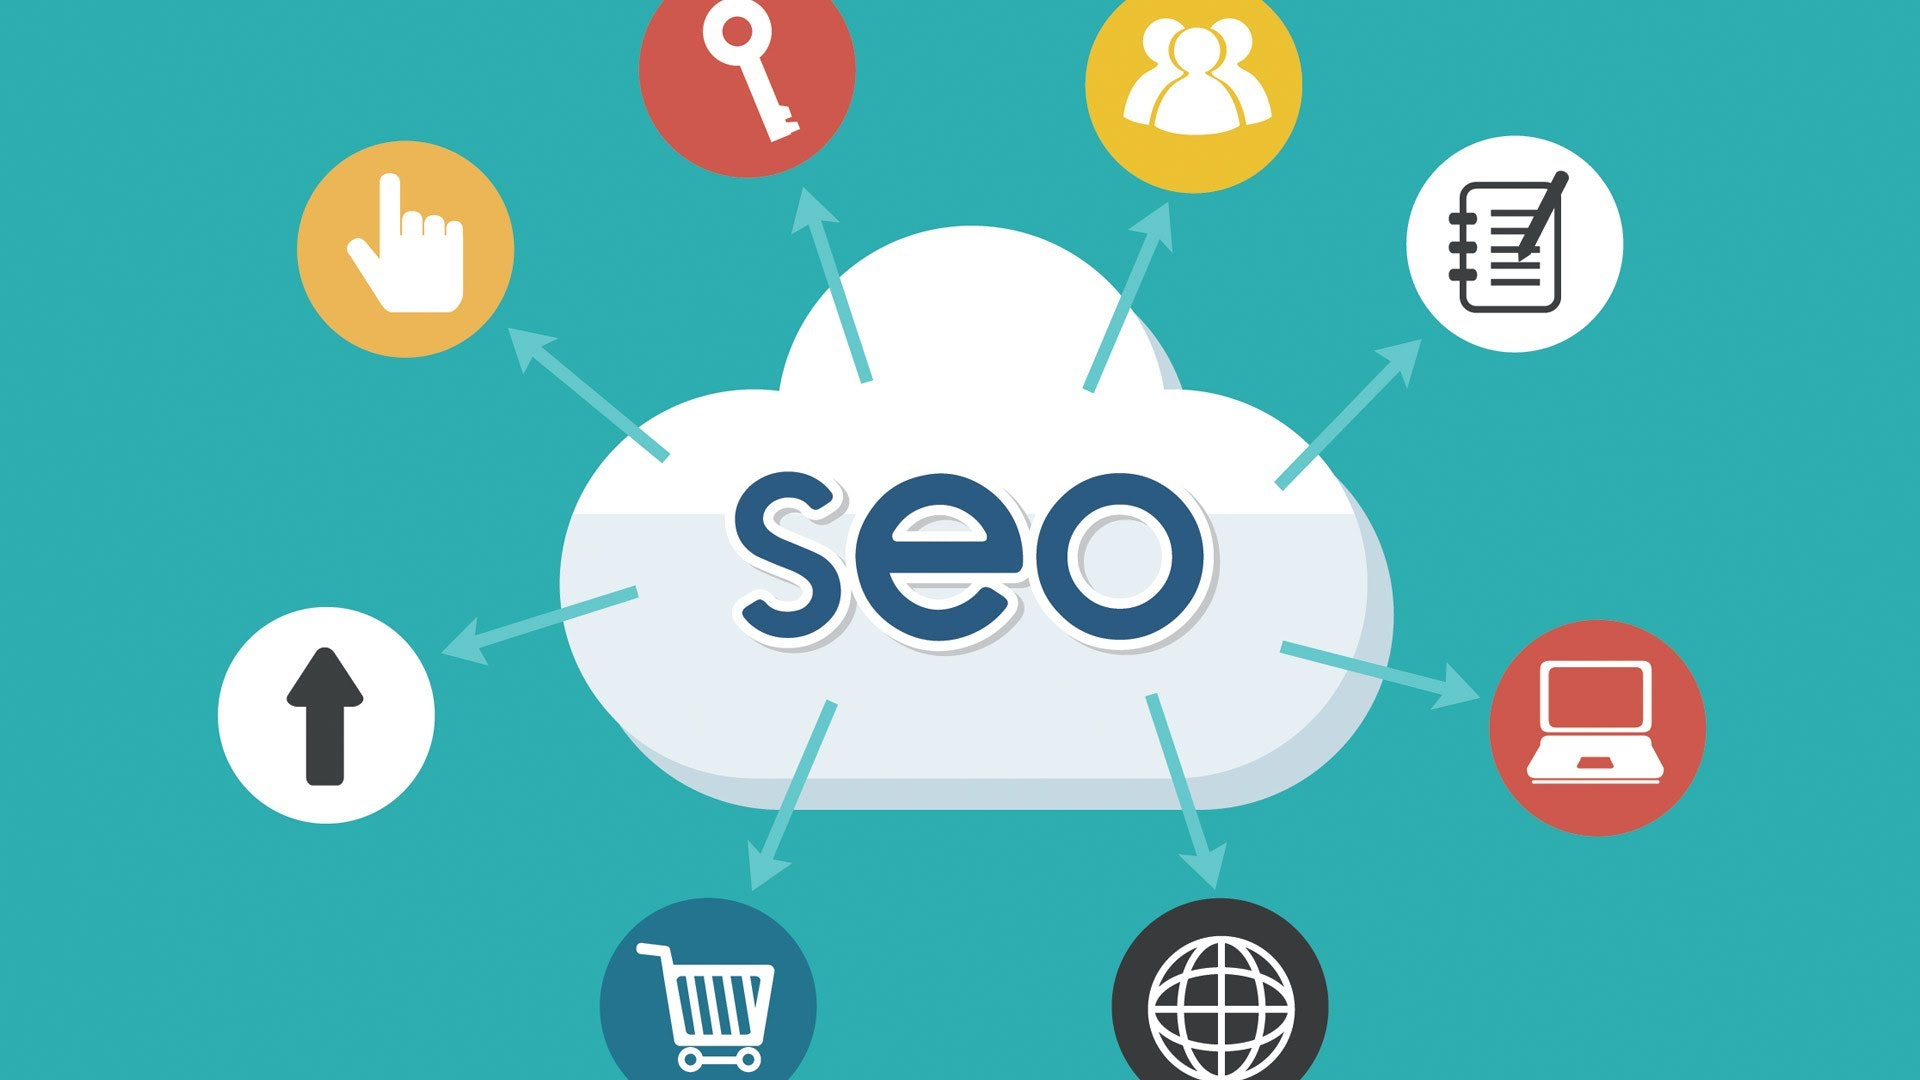 SEO Tips - Start improving your blog today